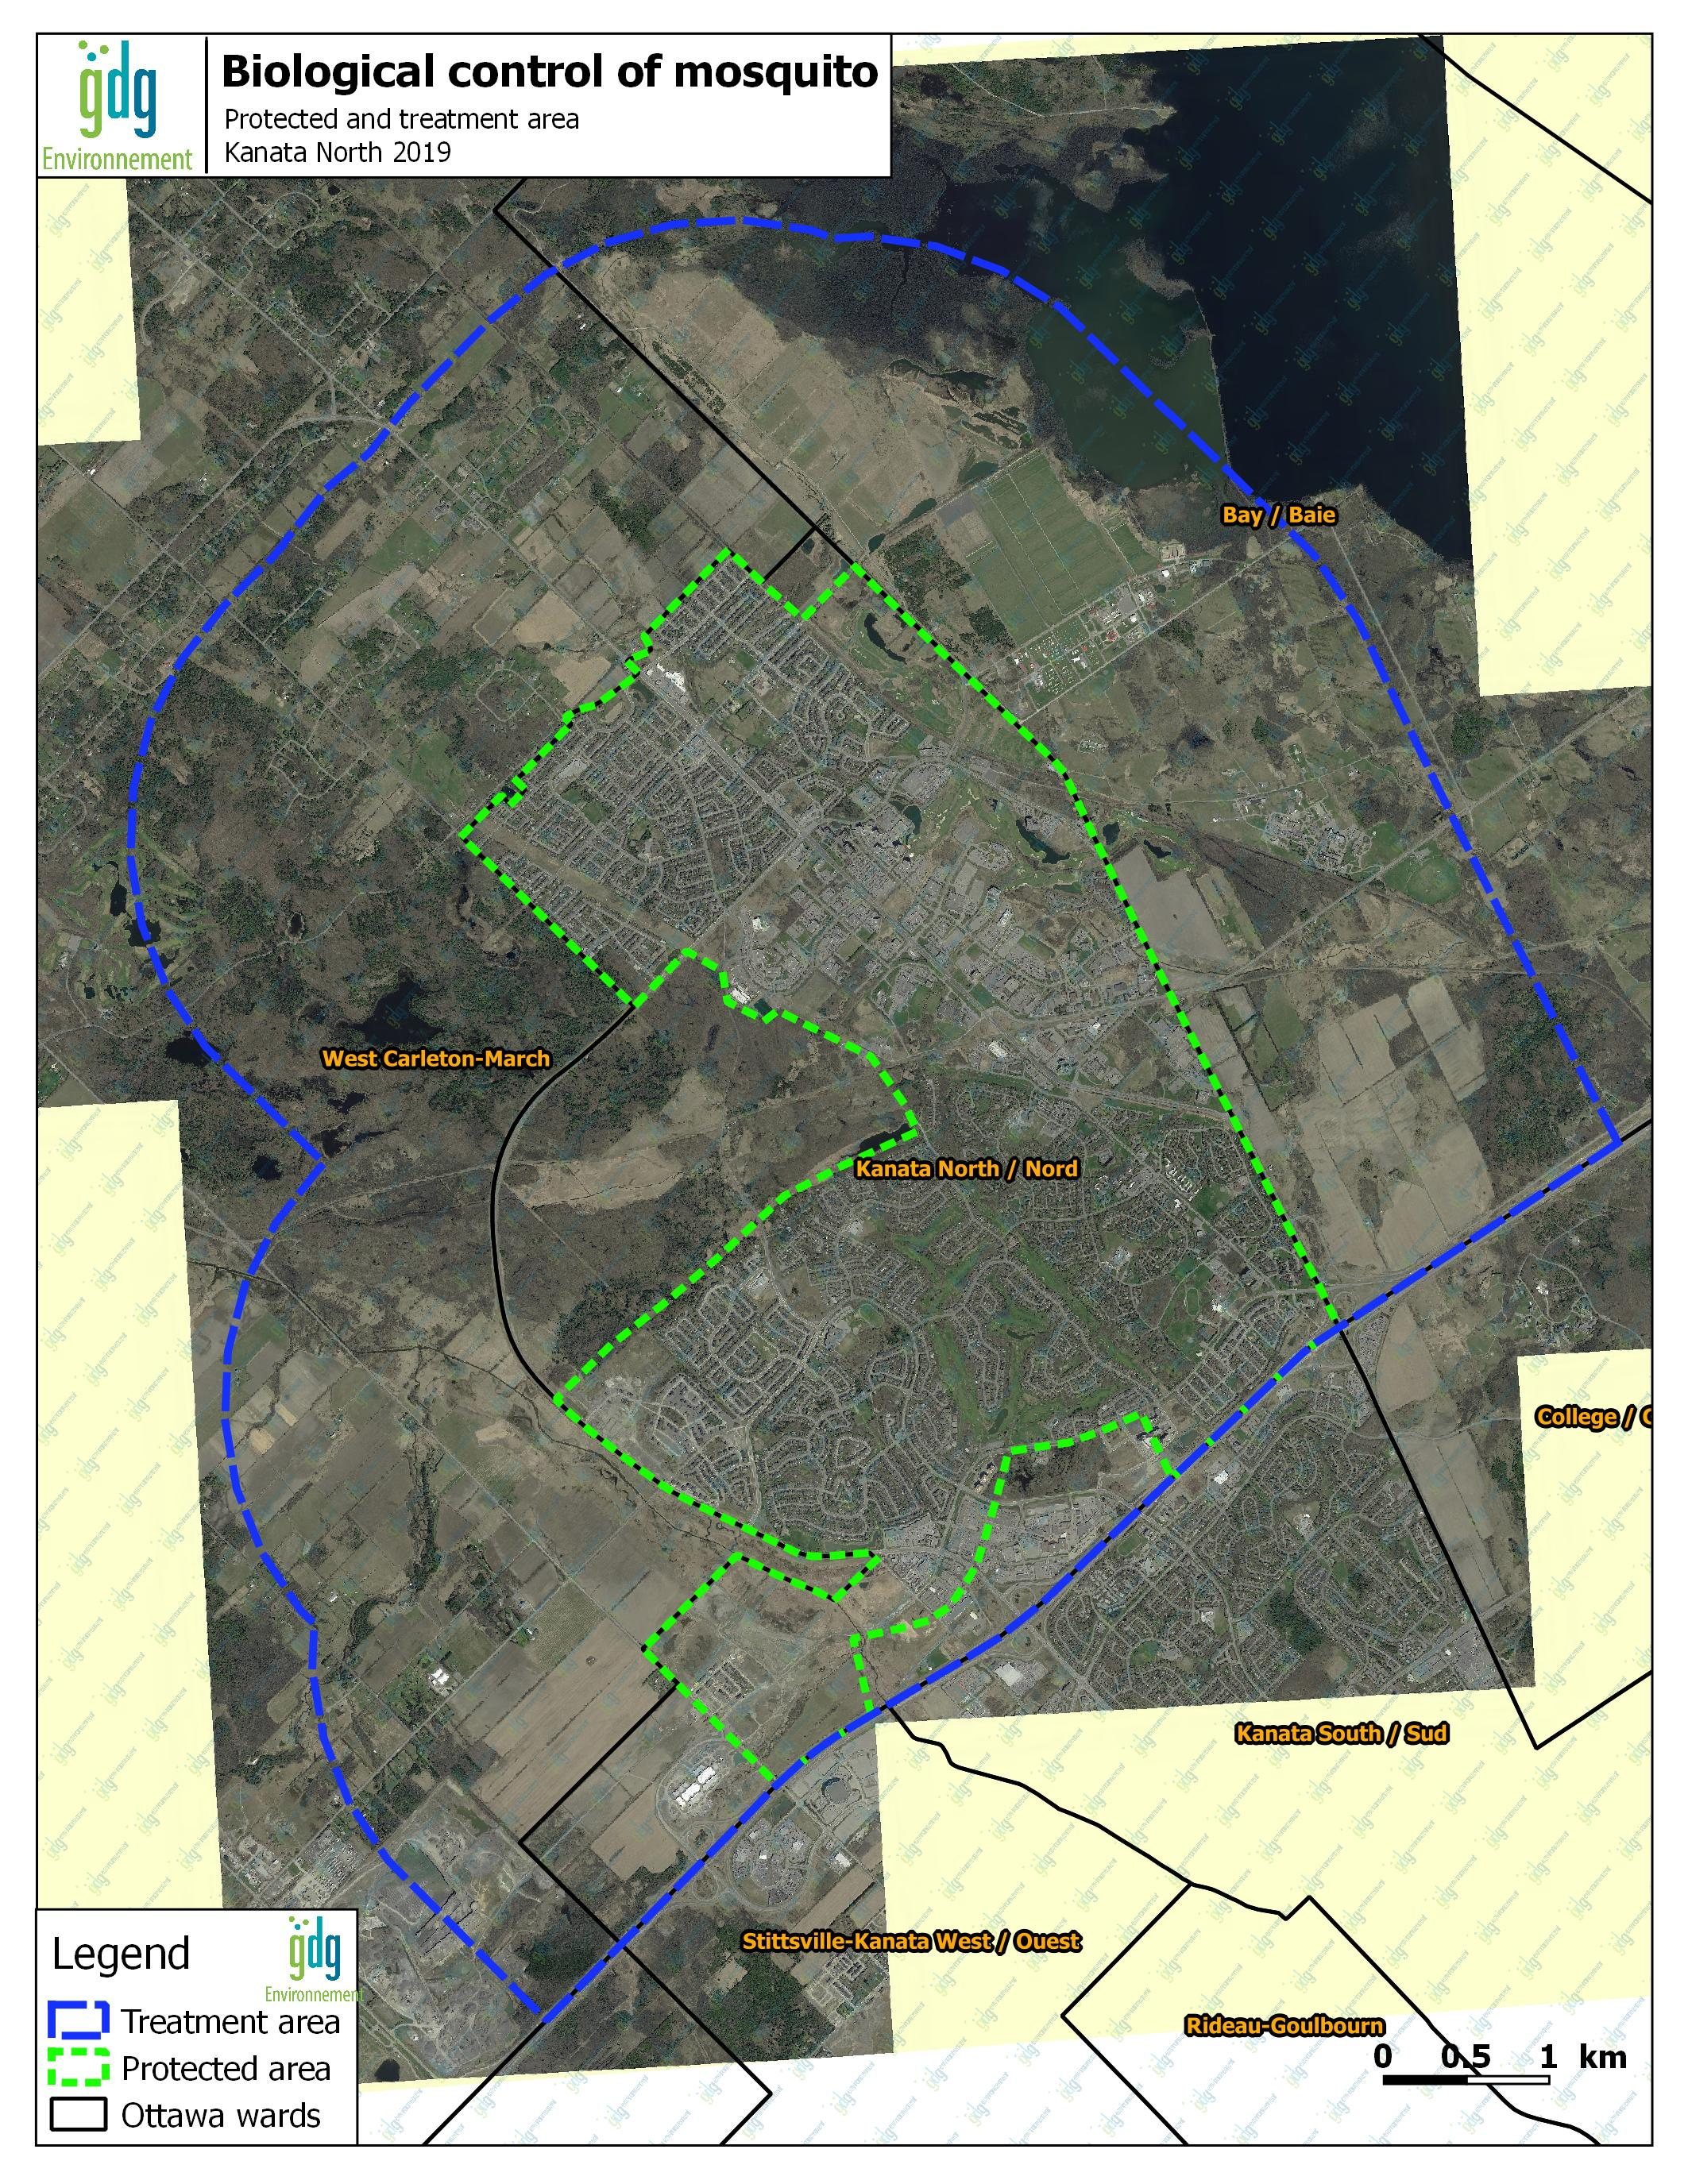 Map indicating the treatment area and protected area for biological control of mosquito.